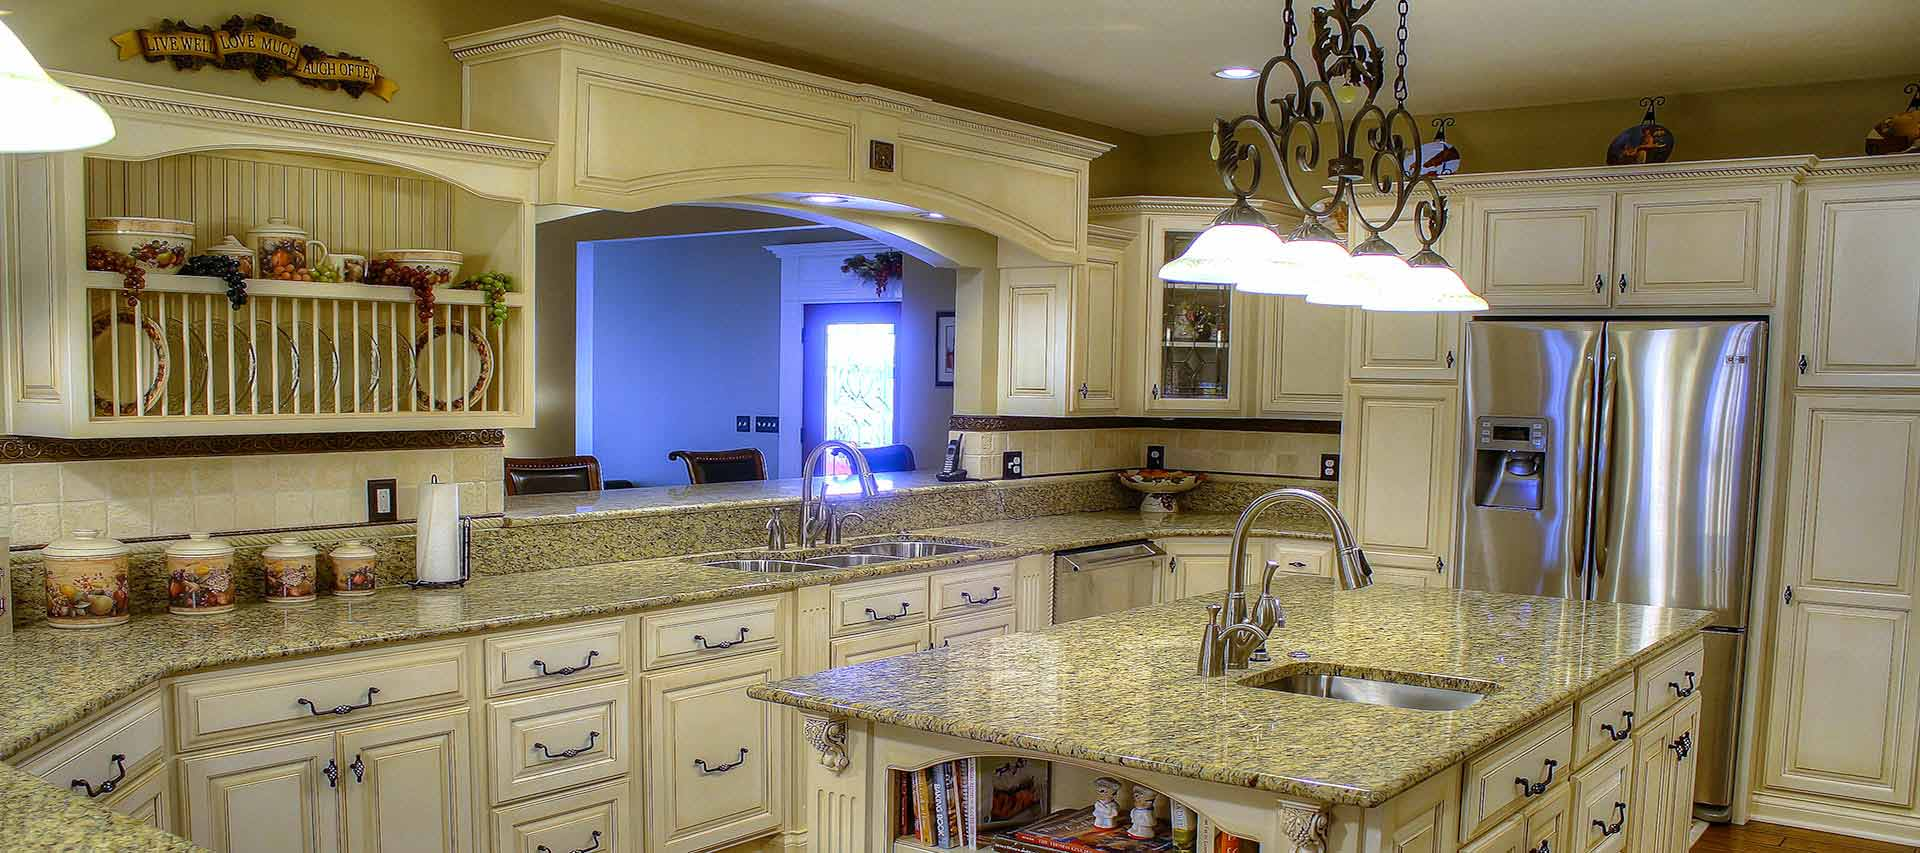 A beautifully designed and constructed classic kitchen remodel in Terre Haute, IN